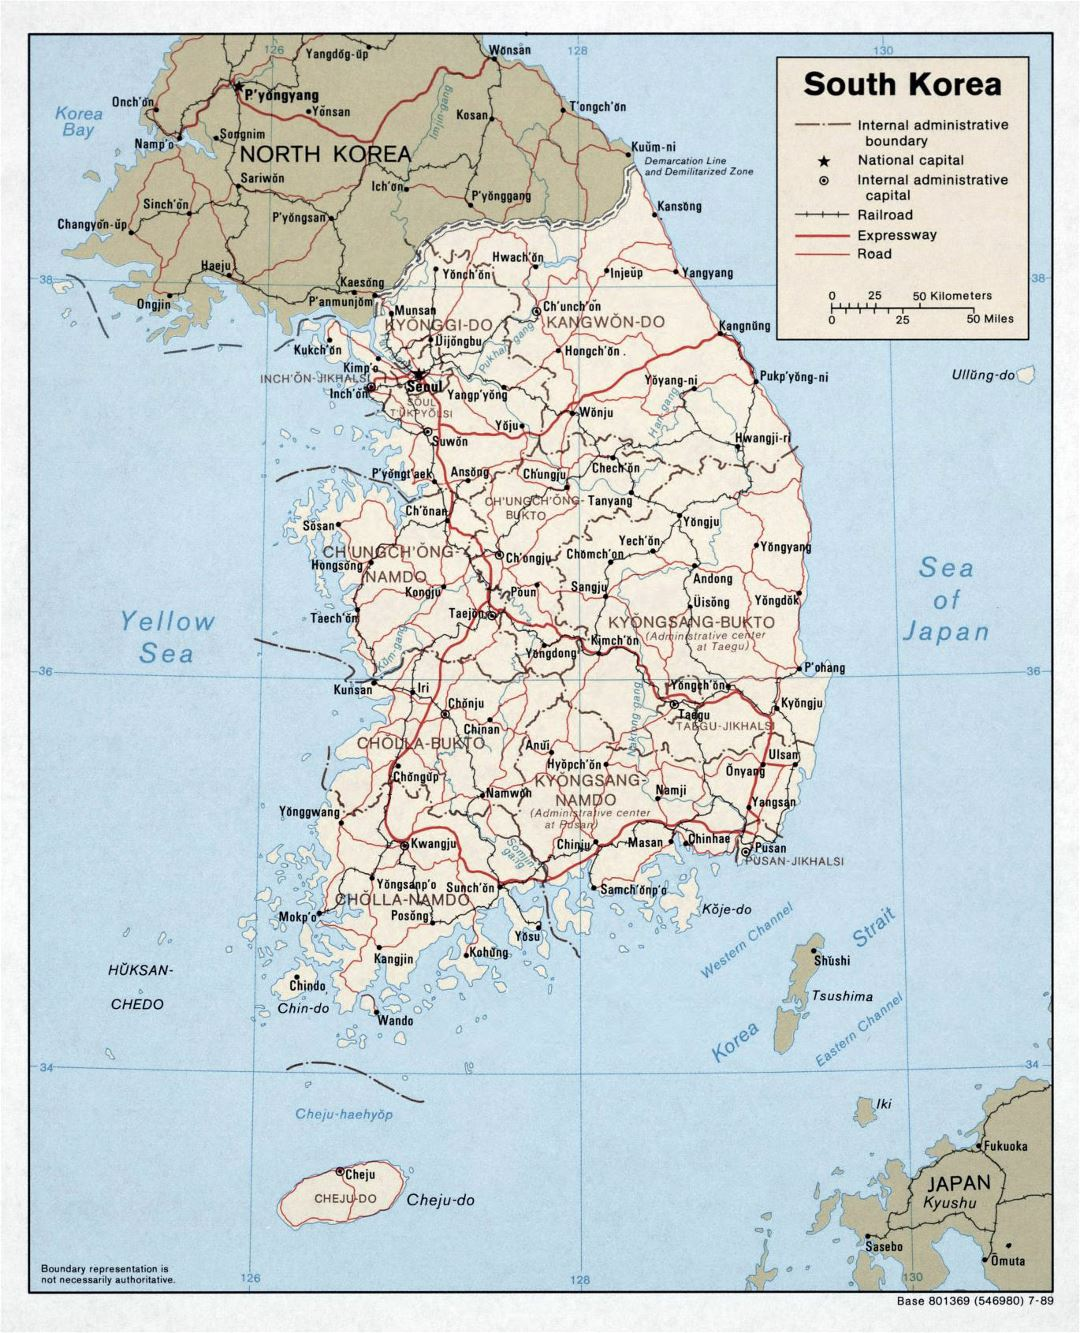 Large political and administrative map of South Korea with roads, railroads and major cities - 1989